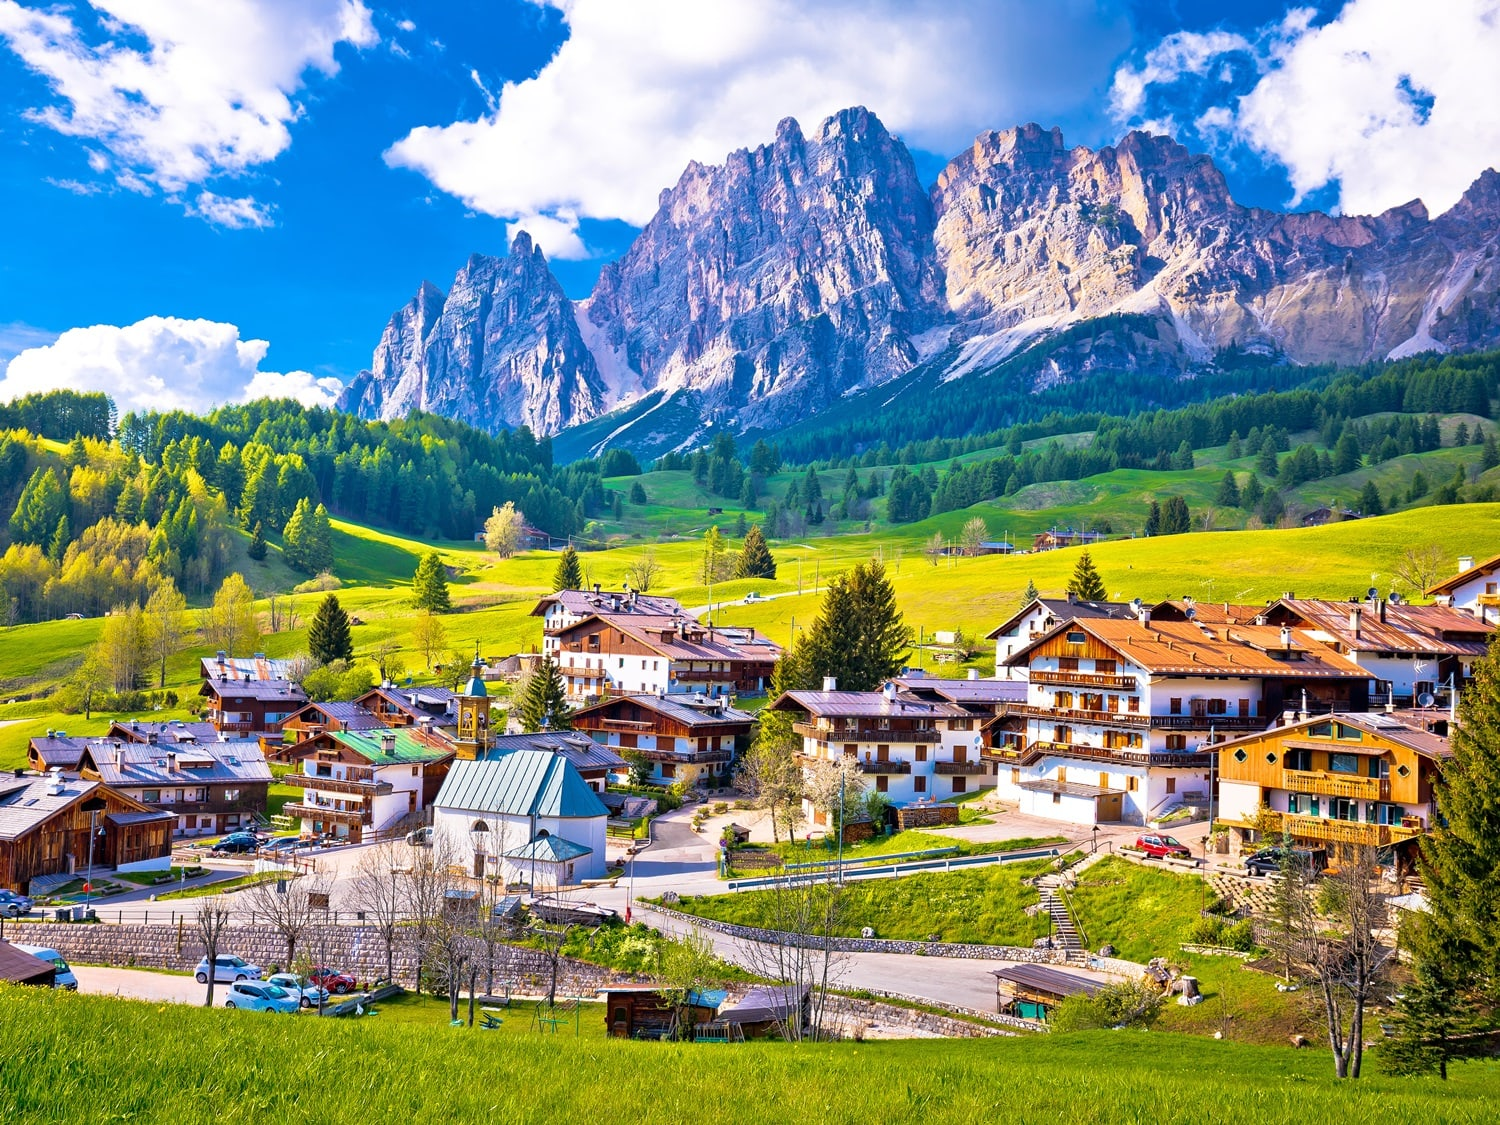 Augusta due srl romania tax code 24178669 is a company from medgidia city, constanta county. Cortina And The Dolomites From Venice Self Guided Full Day Tour May To October Tours Activities Fun Things To Do In Venice Italy Veltra